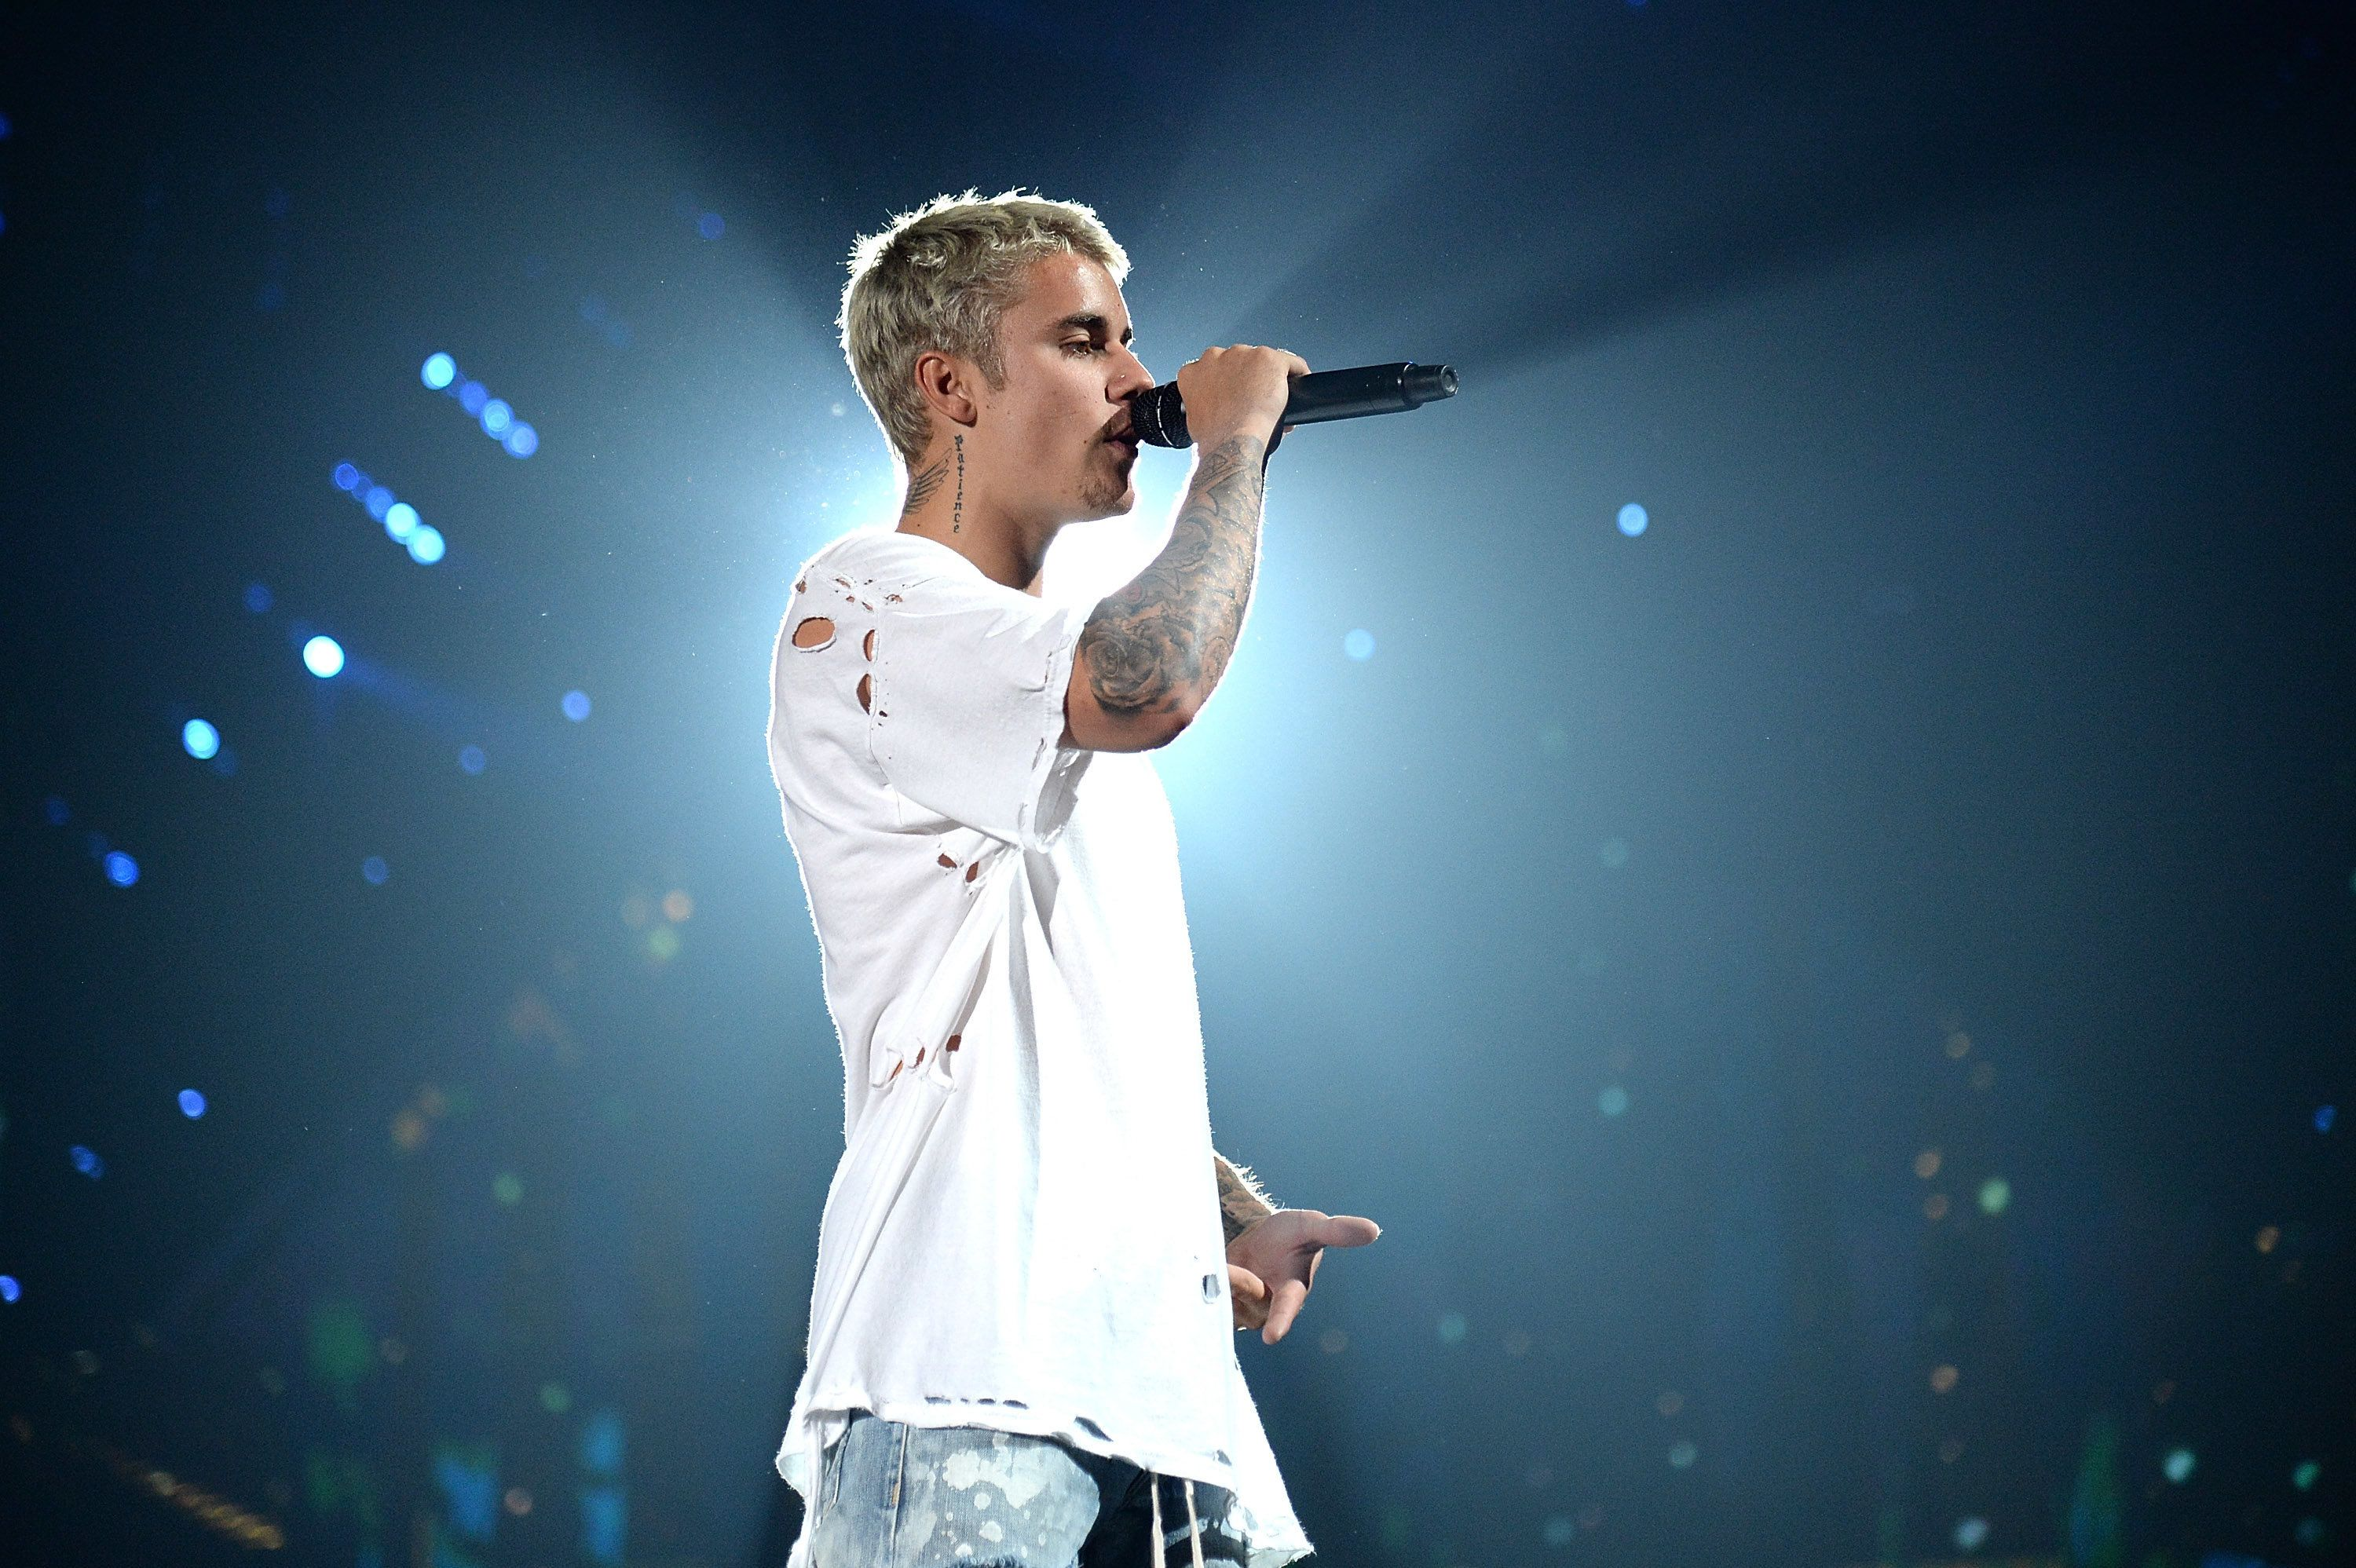 NEW YORK, NY - JULY 19:  Justin Bieber performs on stage during his 'Purpose' tour at Madison Square Garden on July 19, 2016 in New York City.  (Photo by Kevin Mazur/Getty Images)